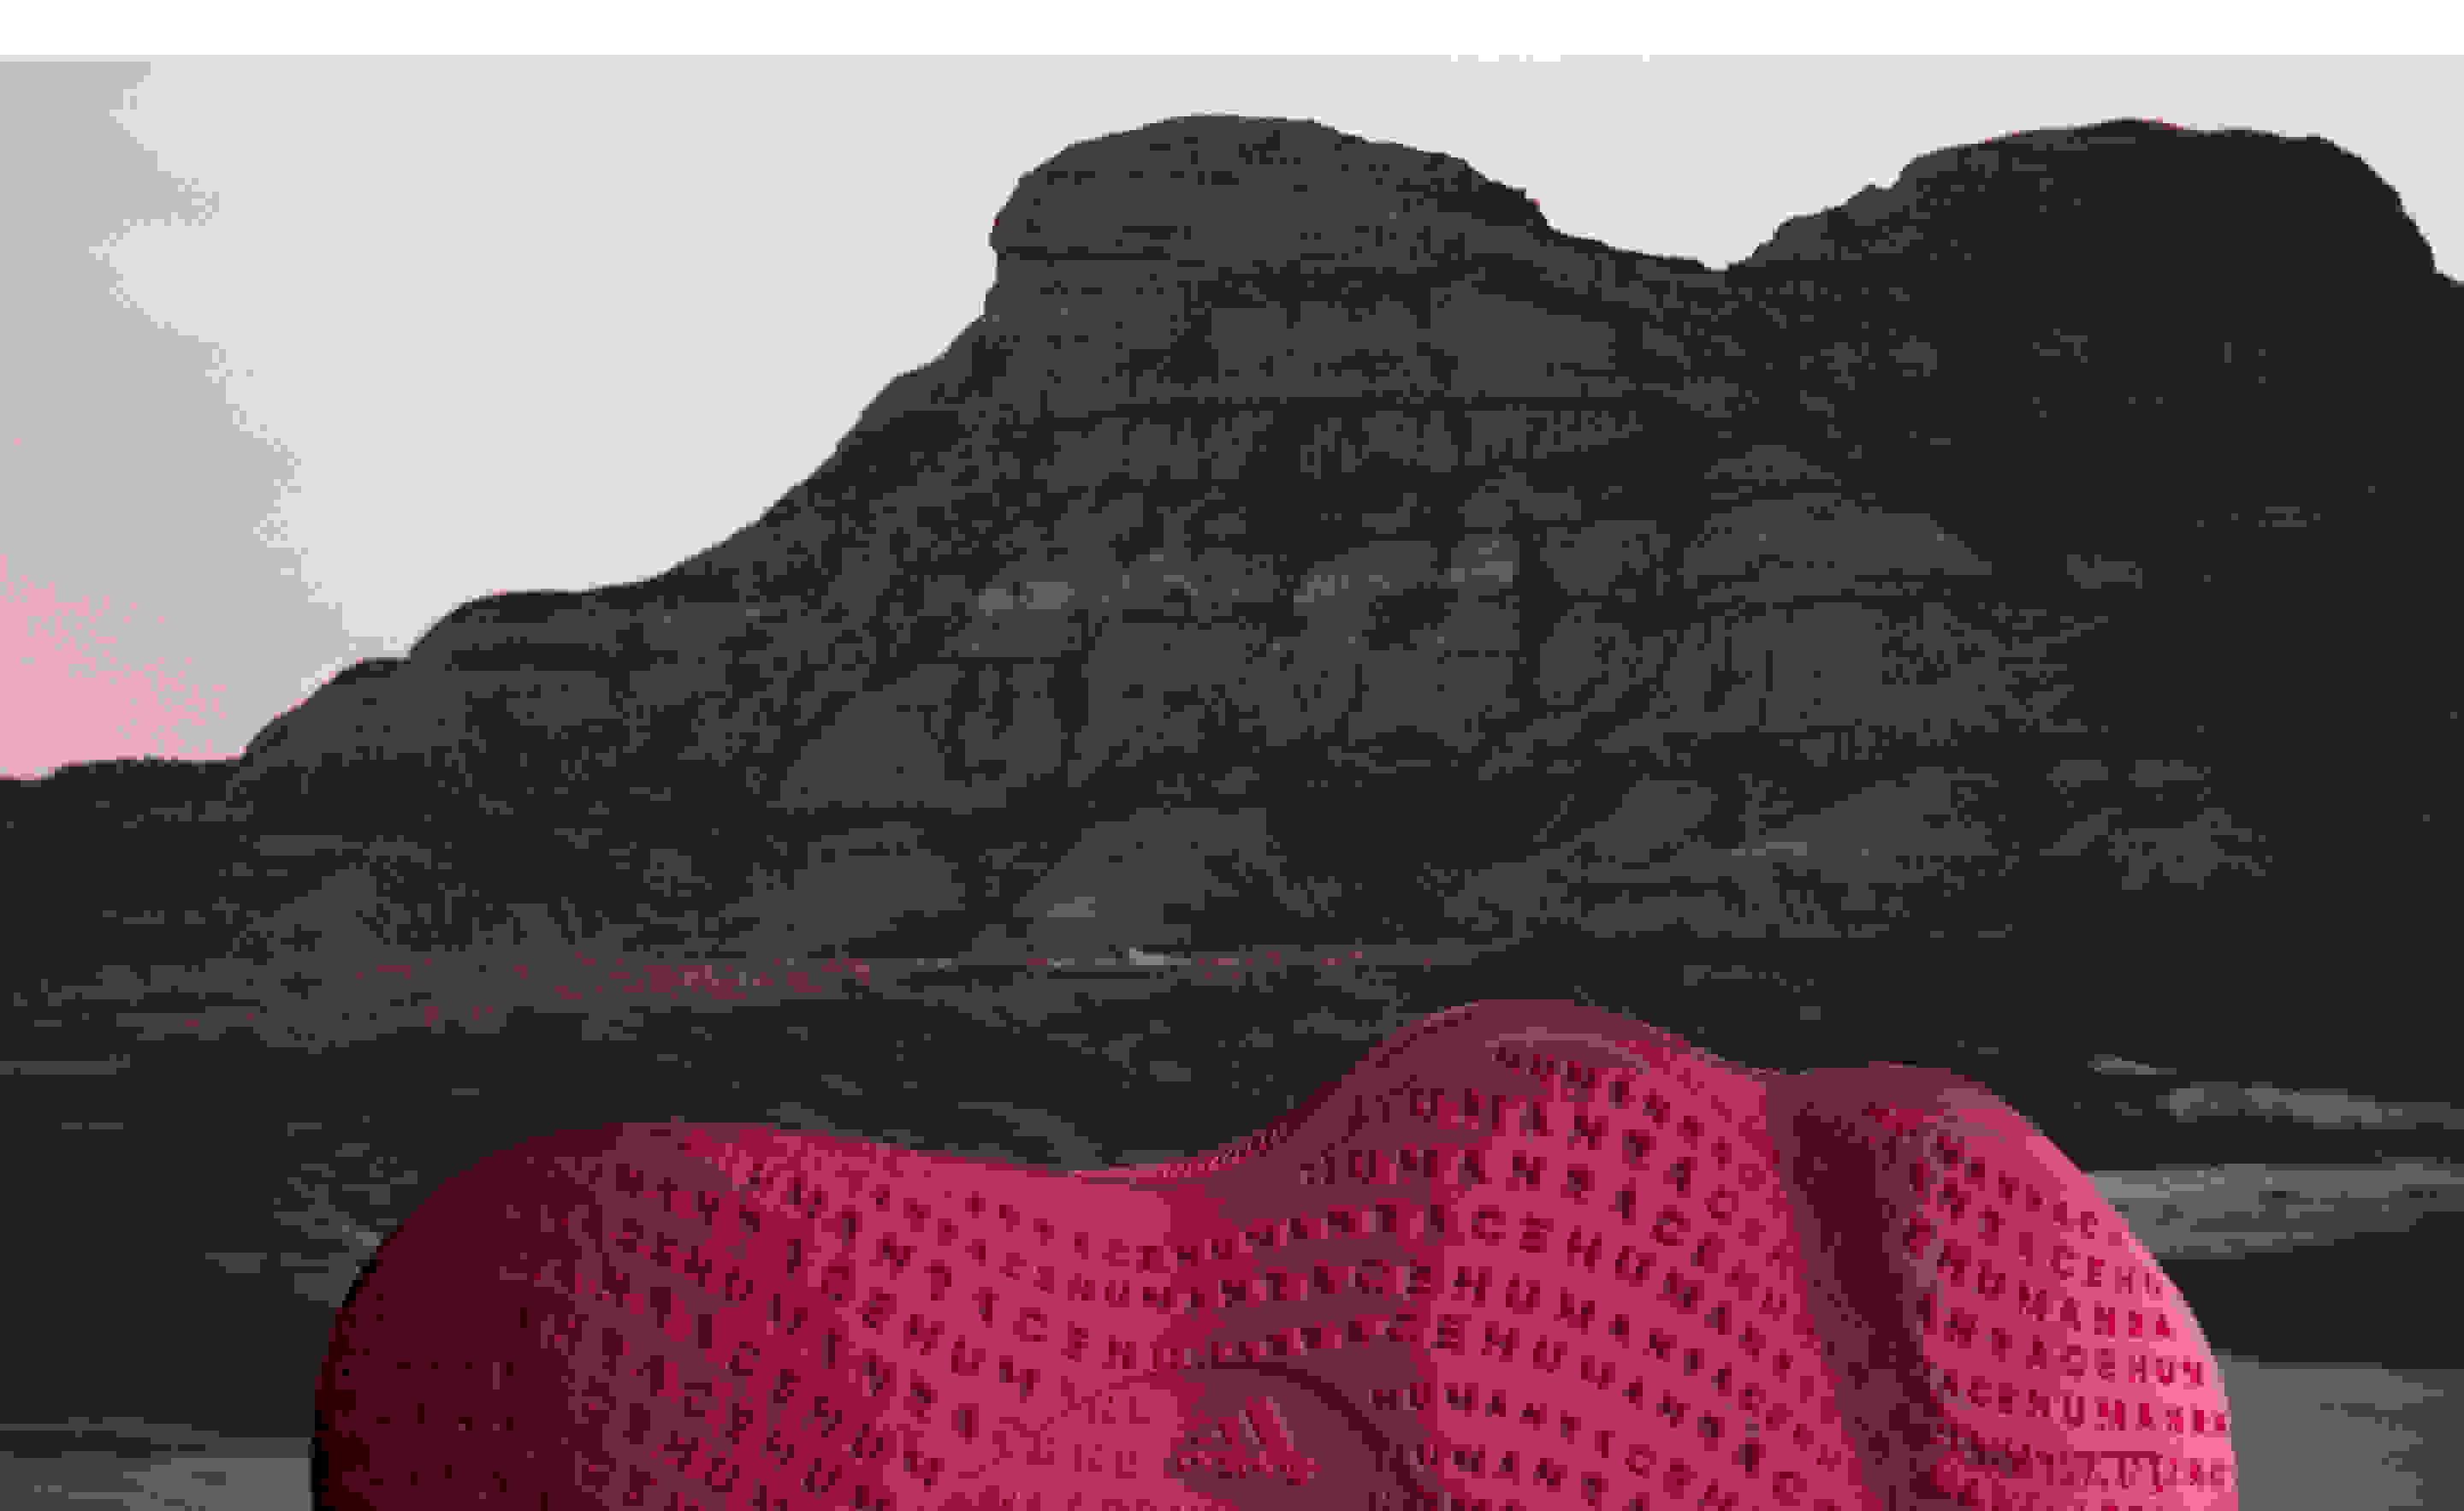 The outsole of a burgundy Humanrace Sičhona shoe against the backdrop of a mountain and tinted sky.